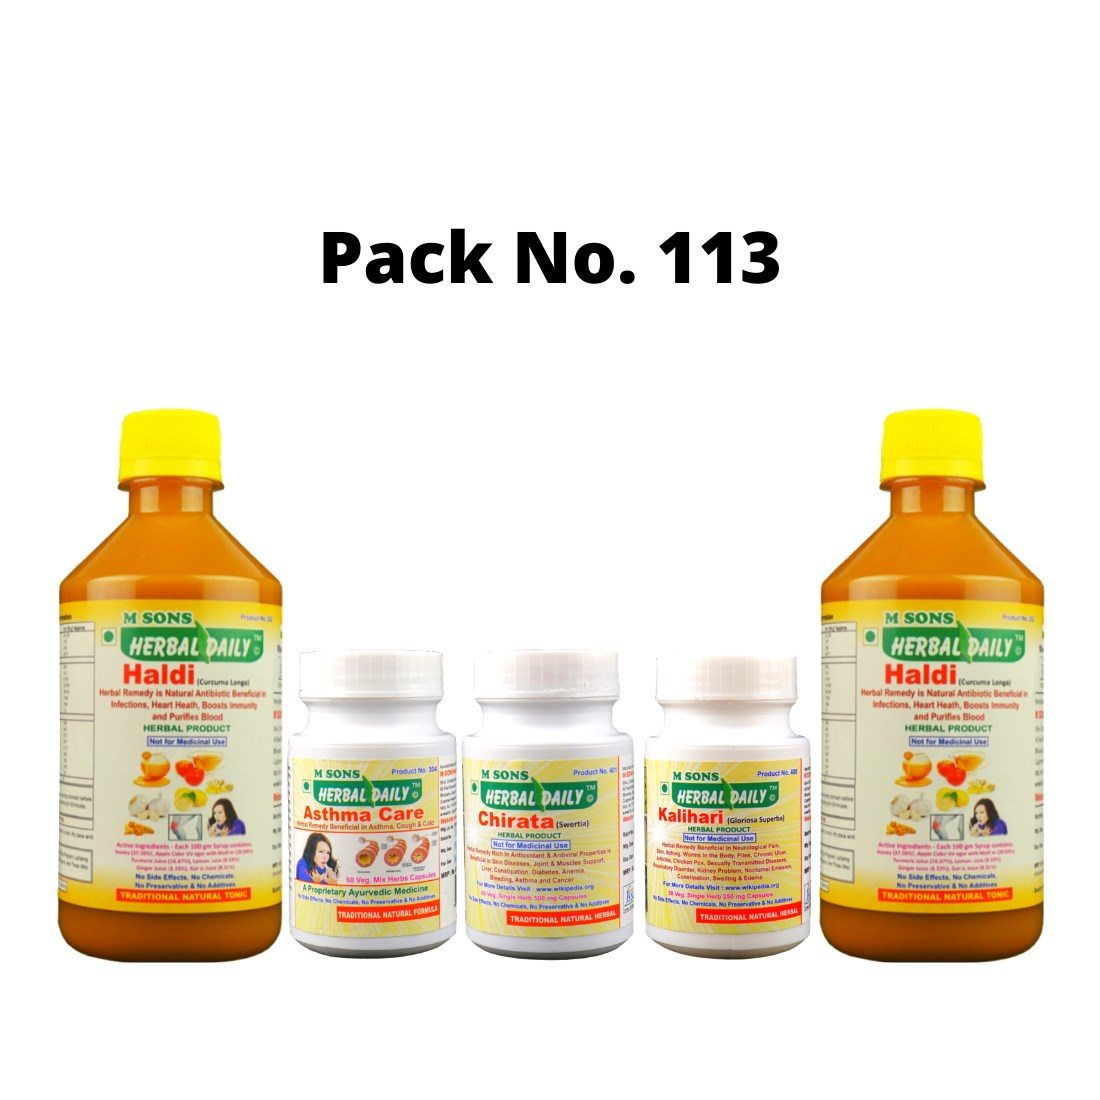 Immunity Recovery Pack